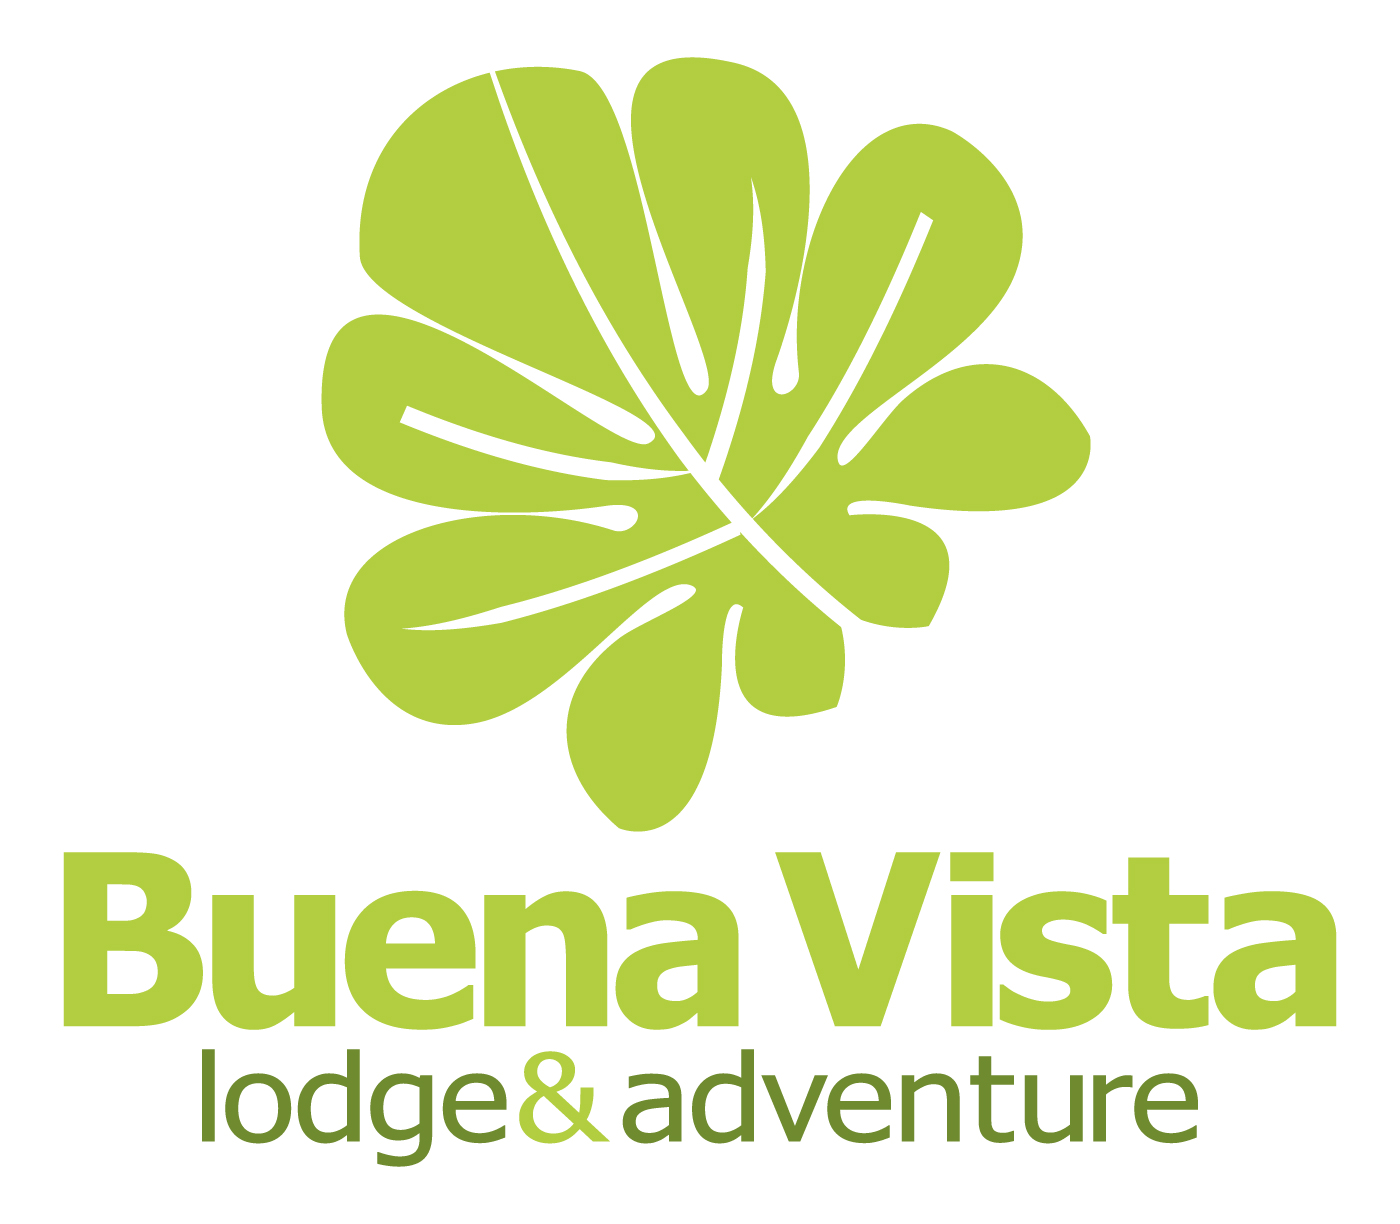 Buena Vista Lodge